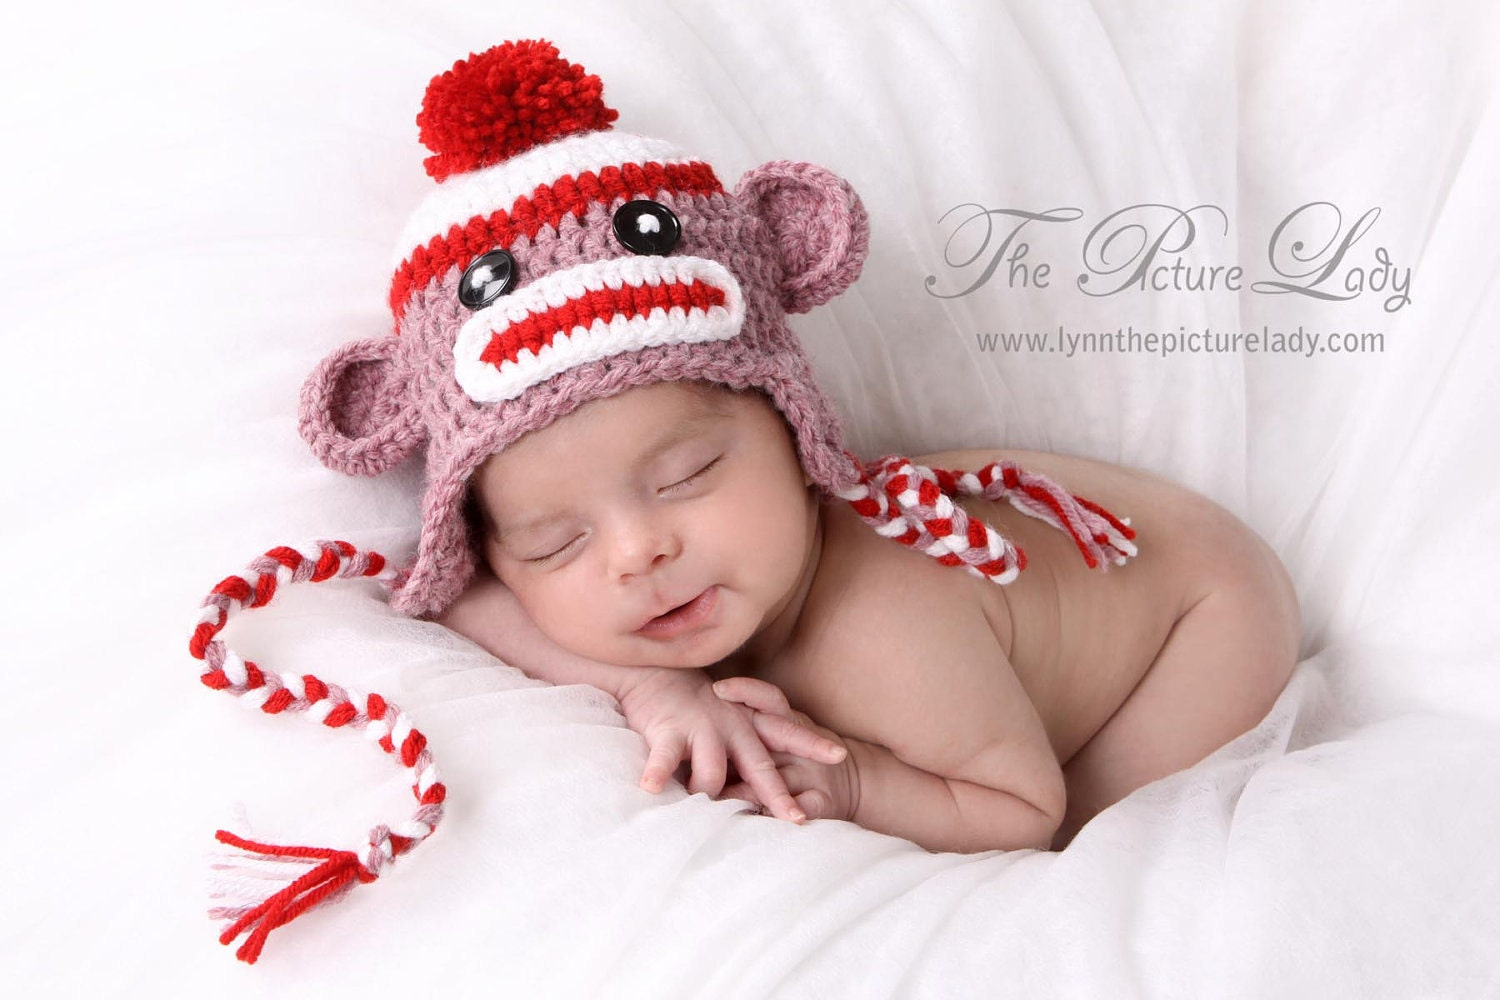 You searched for: baby sock monkey hat! Etsy is the home to thousands of handmade, vintage, and one-of-a-kind products and gifts related to your search. No matter what you're looking for or where you are in the world, our global marketplace of sellers can help you .